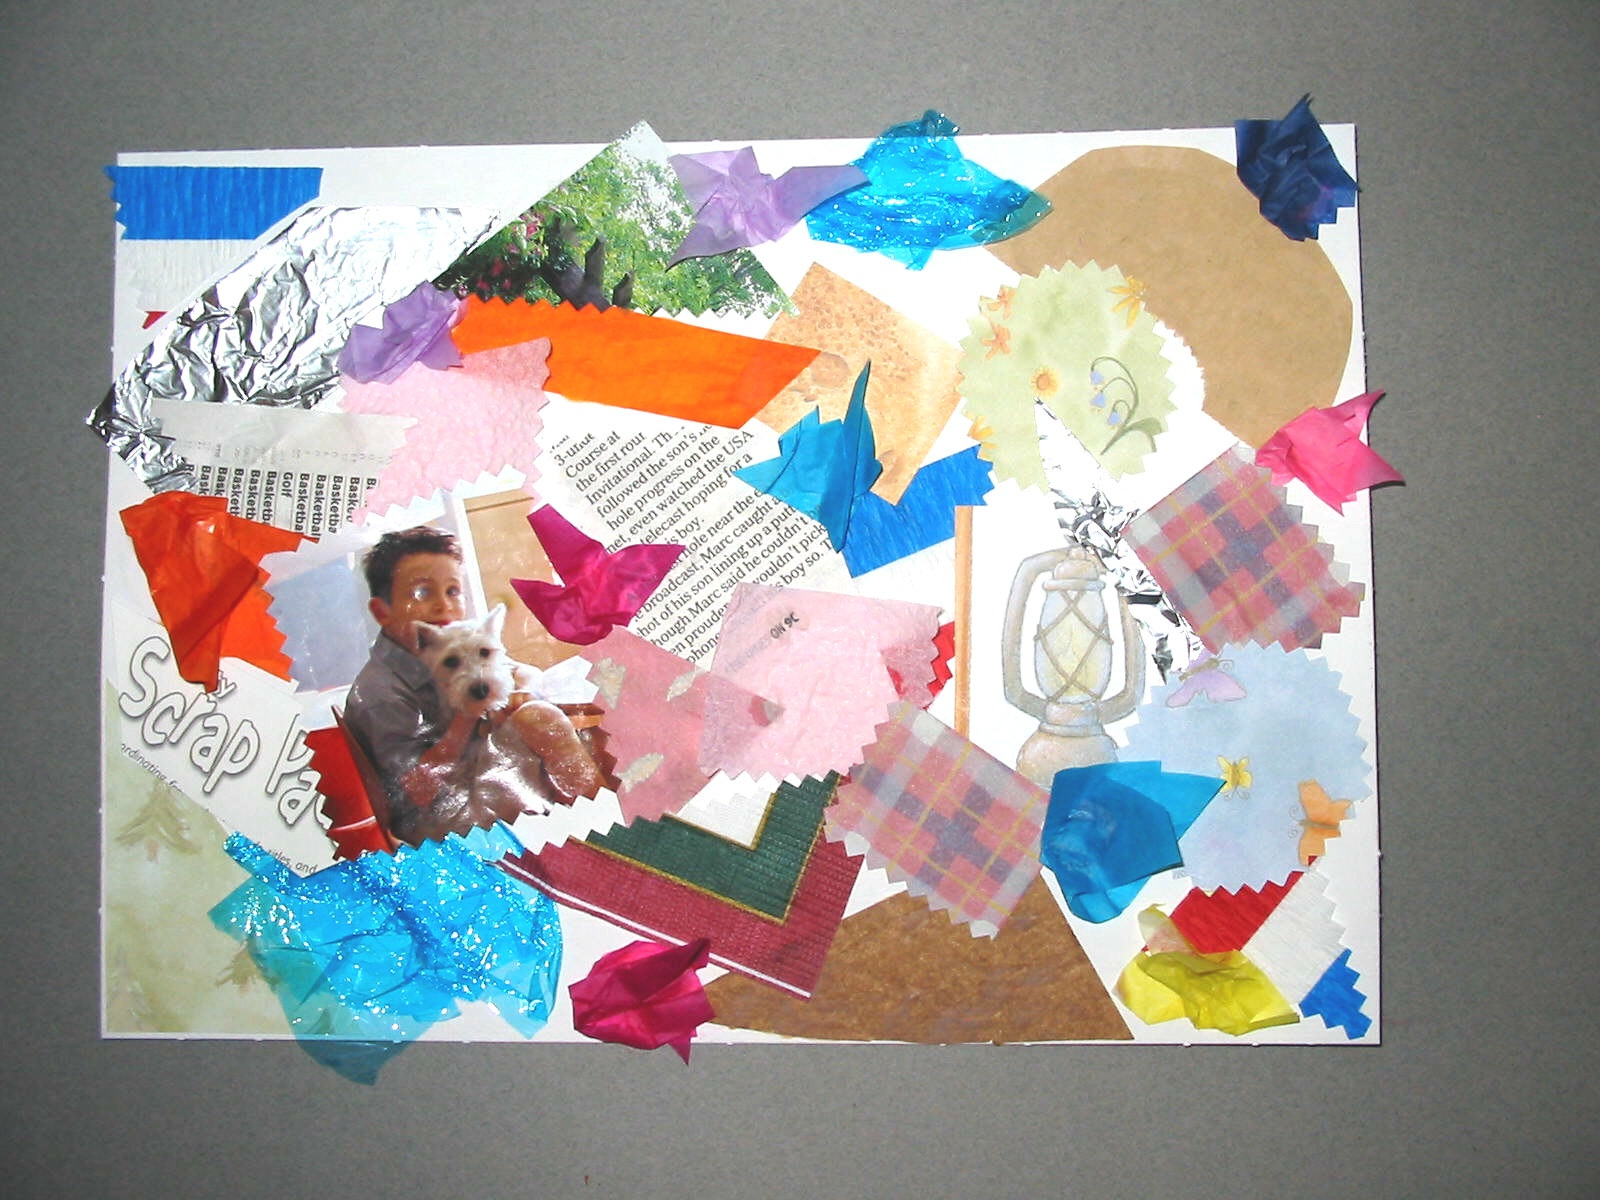 7 Easy Ways to Make a Collage (with Pictures) - wikiHow How to make a collage of photos on chart paper